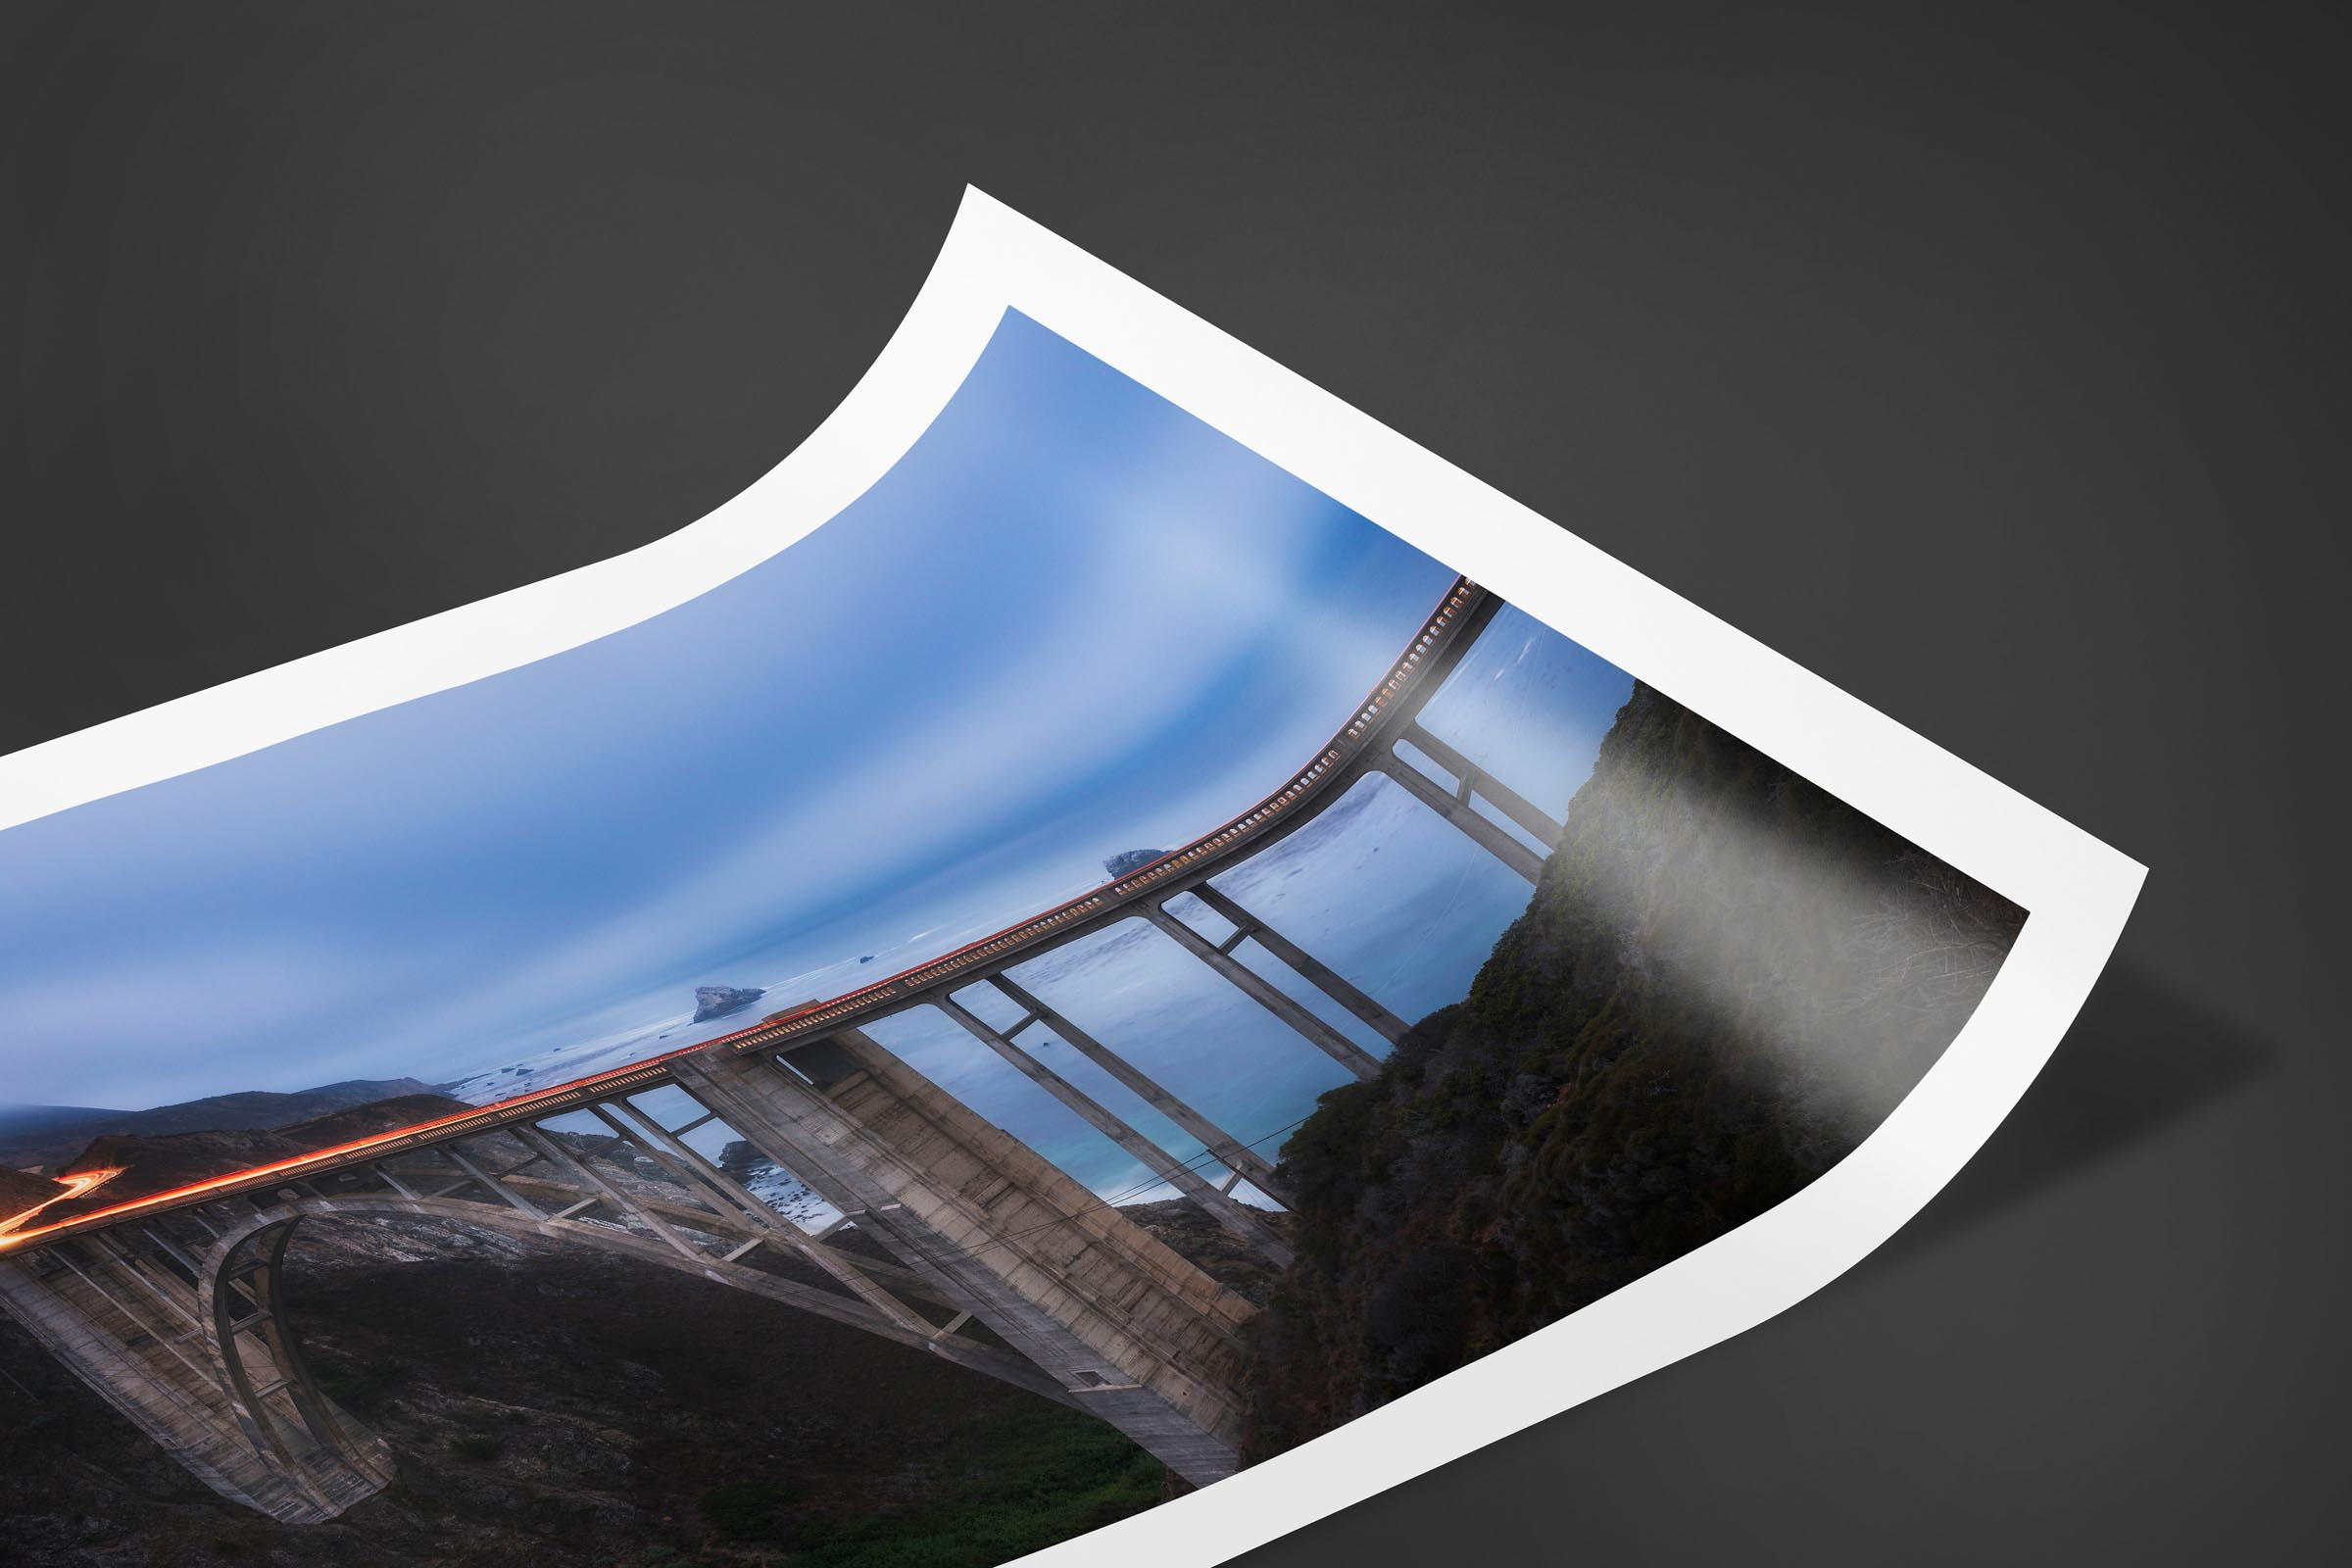 Fine art limited edition print of Bixby Bridge in Big Sur, California by Brent Goldman Photography